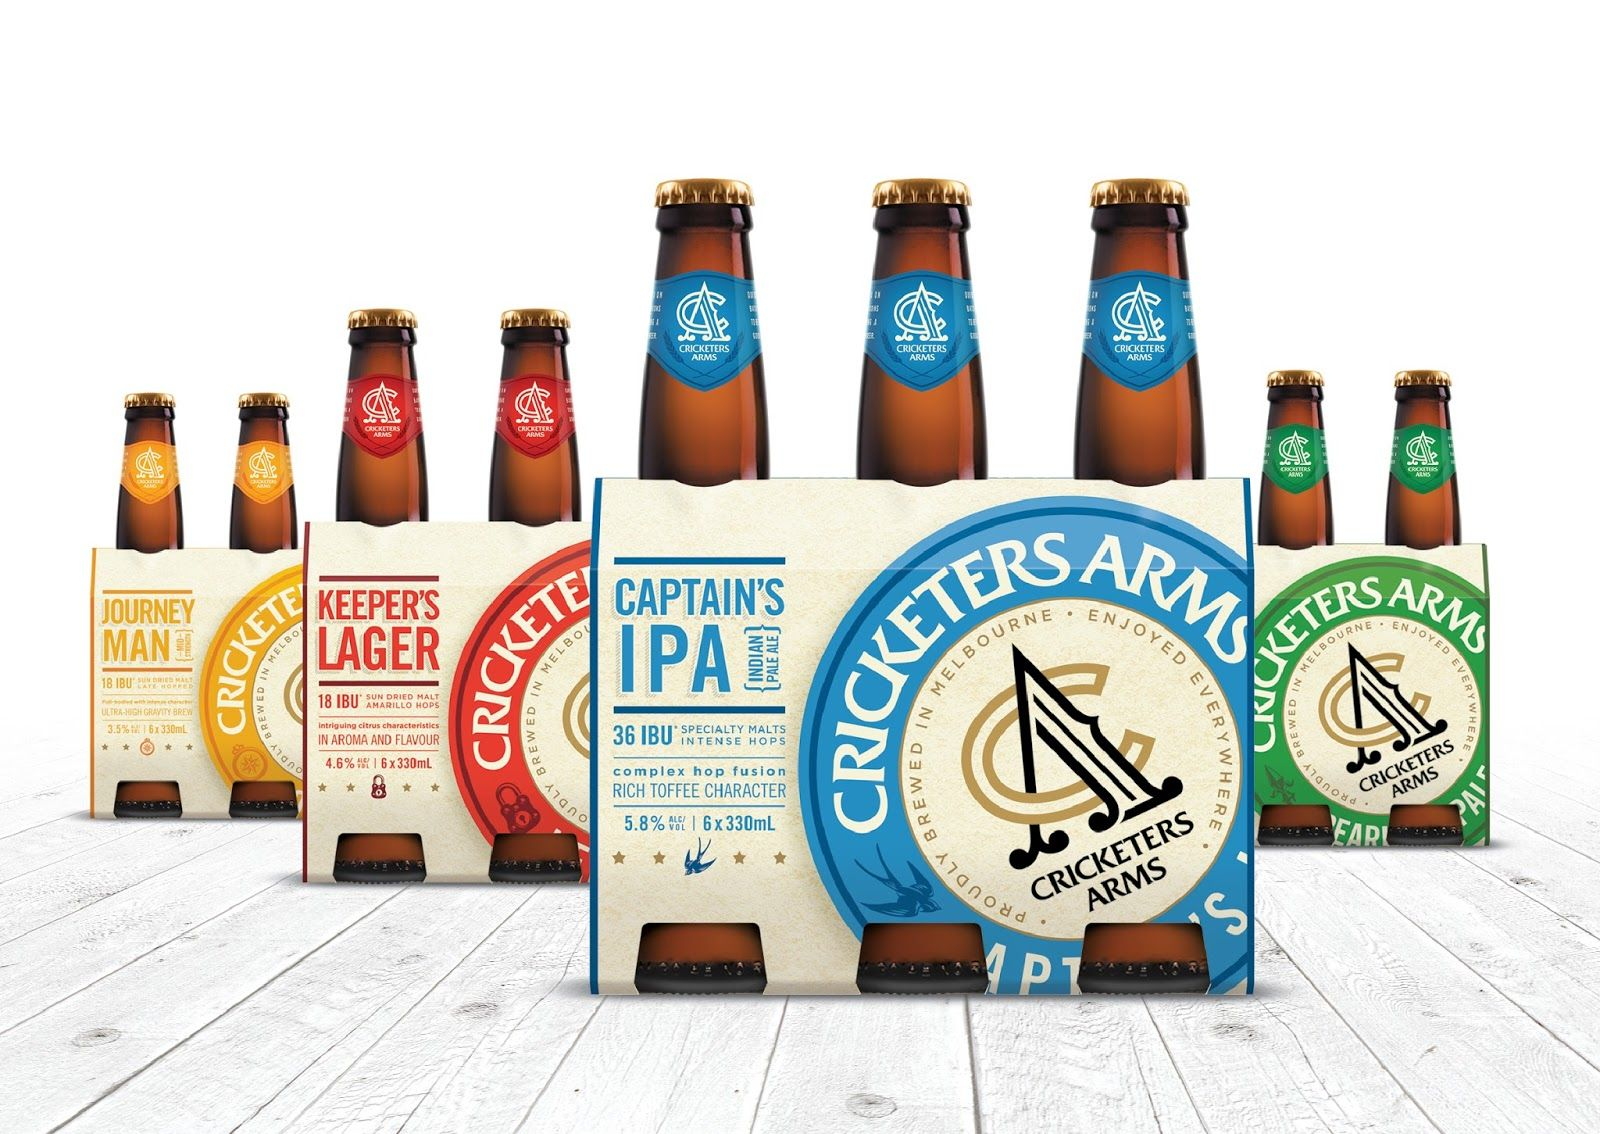 Cricketers Arms Creative Packaging Design Beautiful Packaging Design Packaging Inspiration